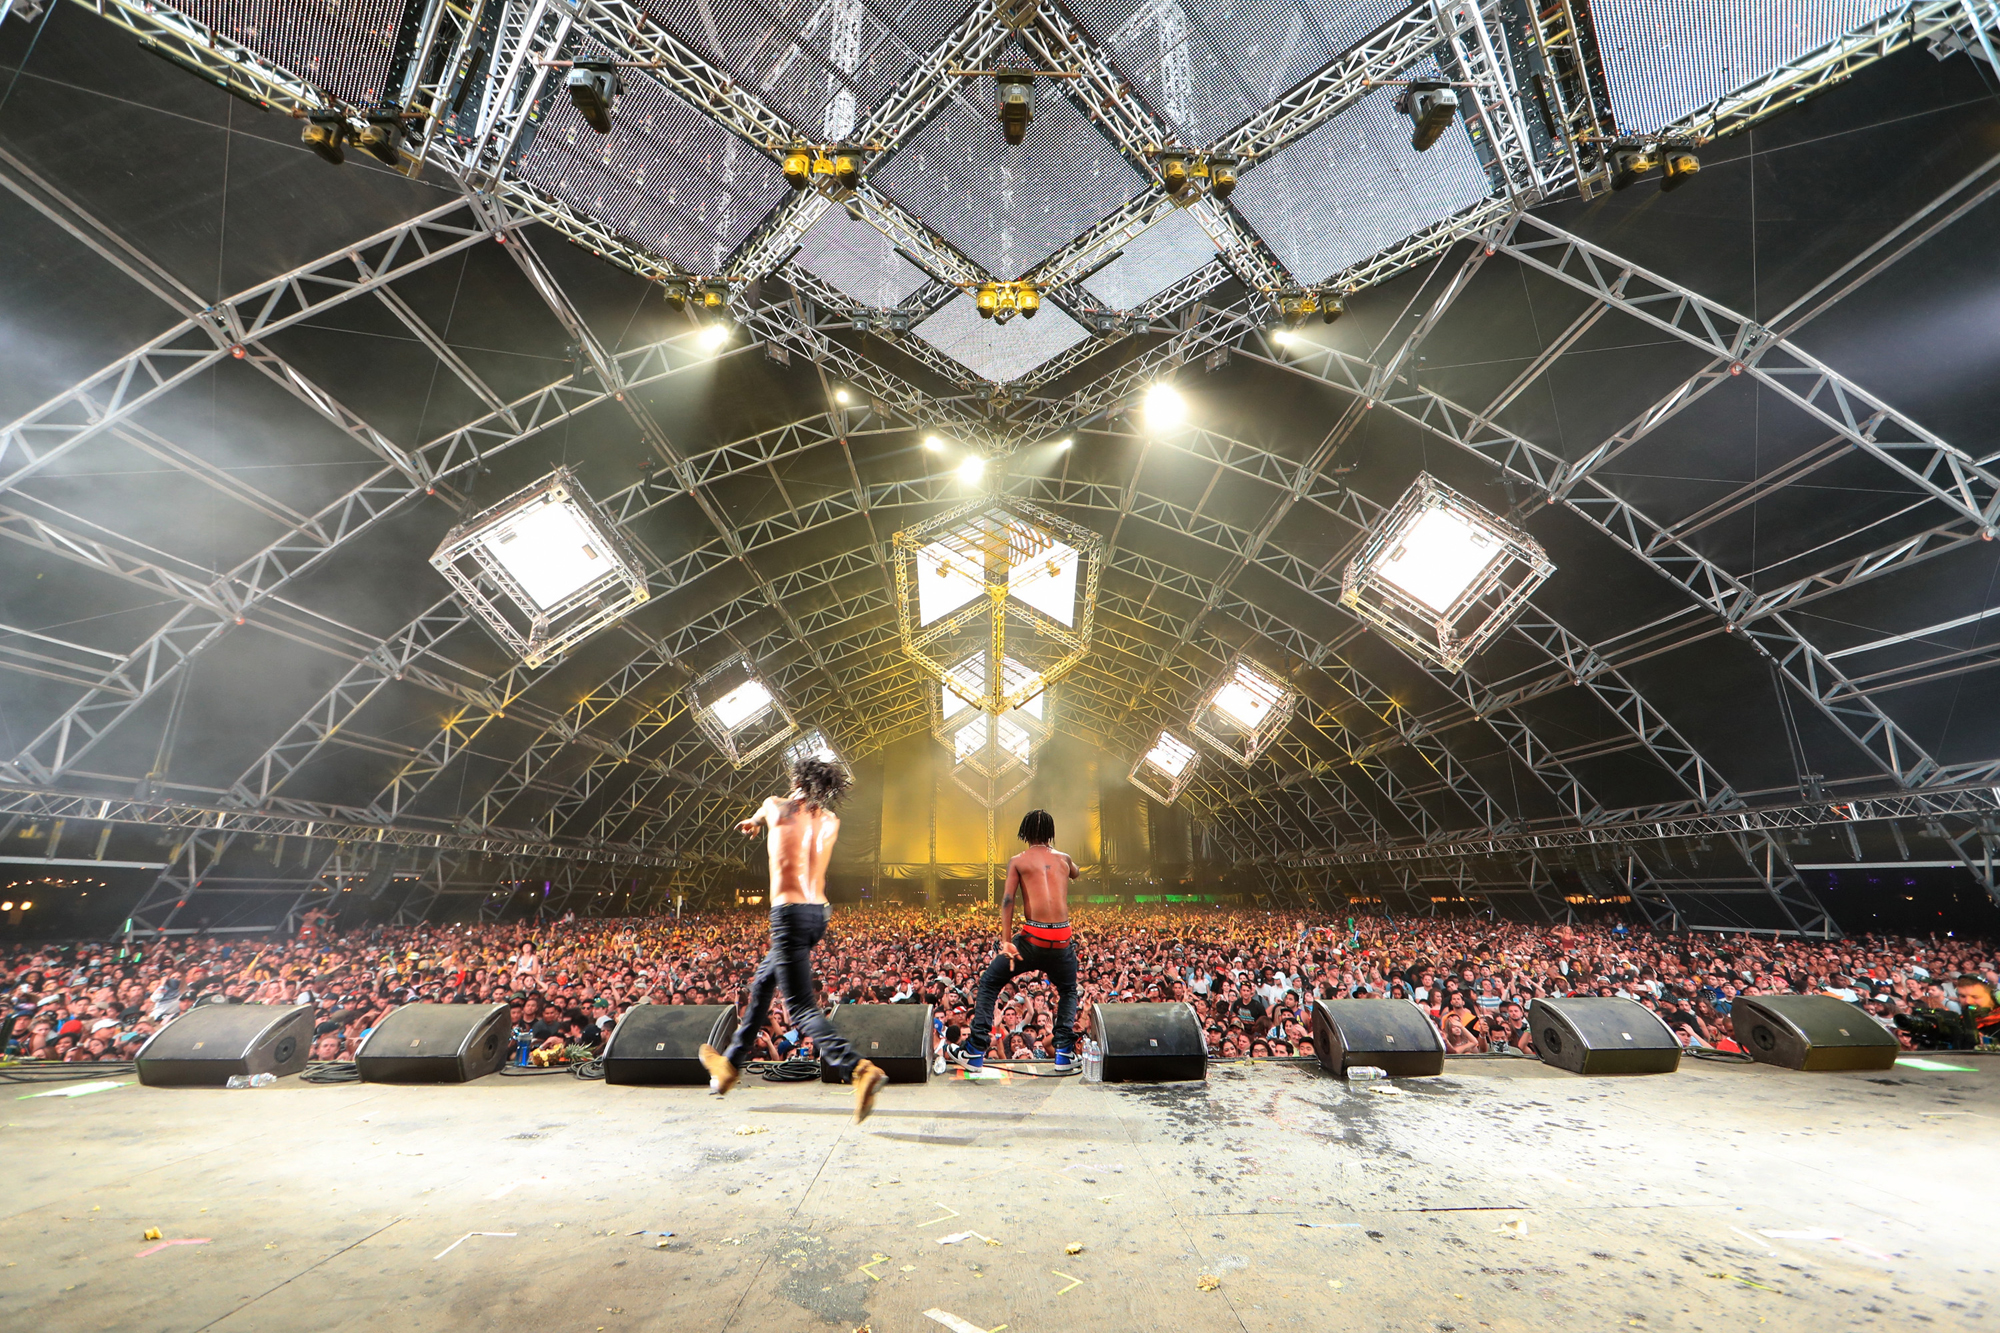 Recordings artists Swae Lee and Slim Jimmy of Rae Sremmurd perform onstage during day 1 of the 2016 Coachella Valley Music & Arts Festival Weekend 2 at the Empire Polo Club on April 22, 2016 in Indio, California.